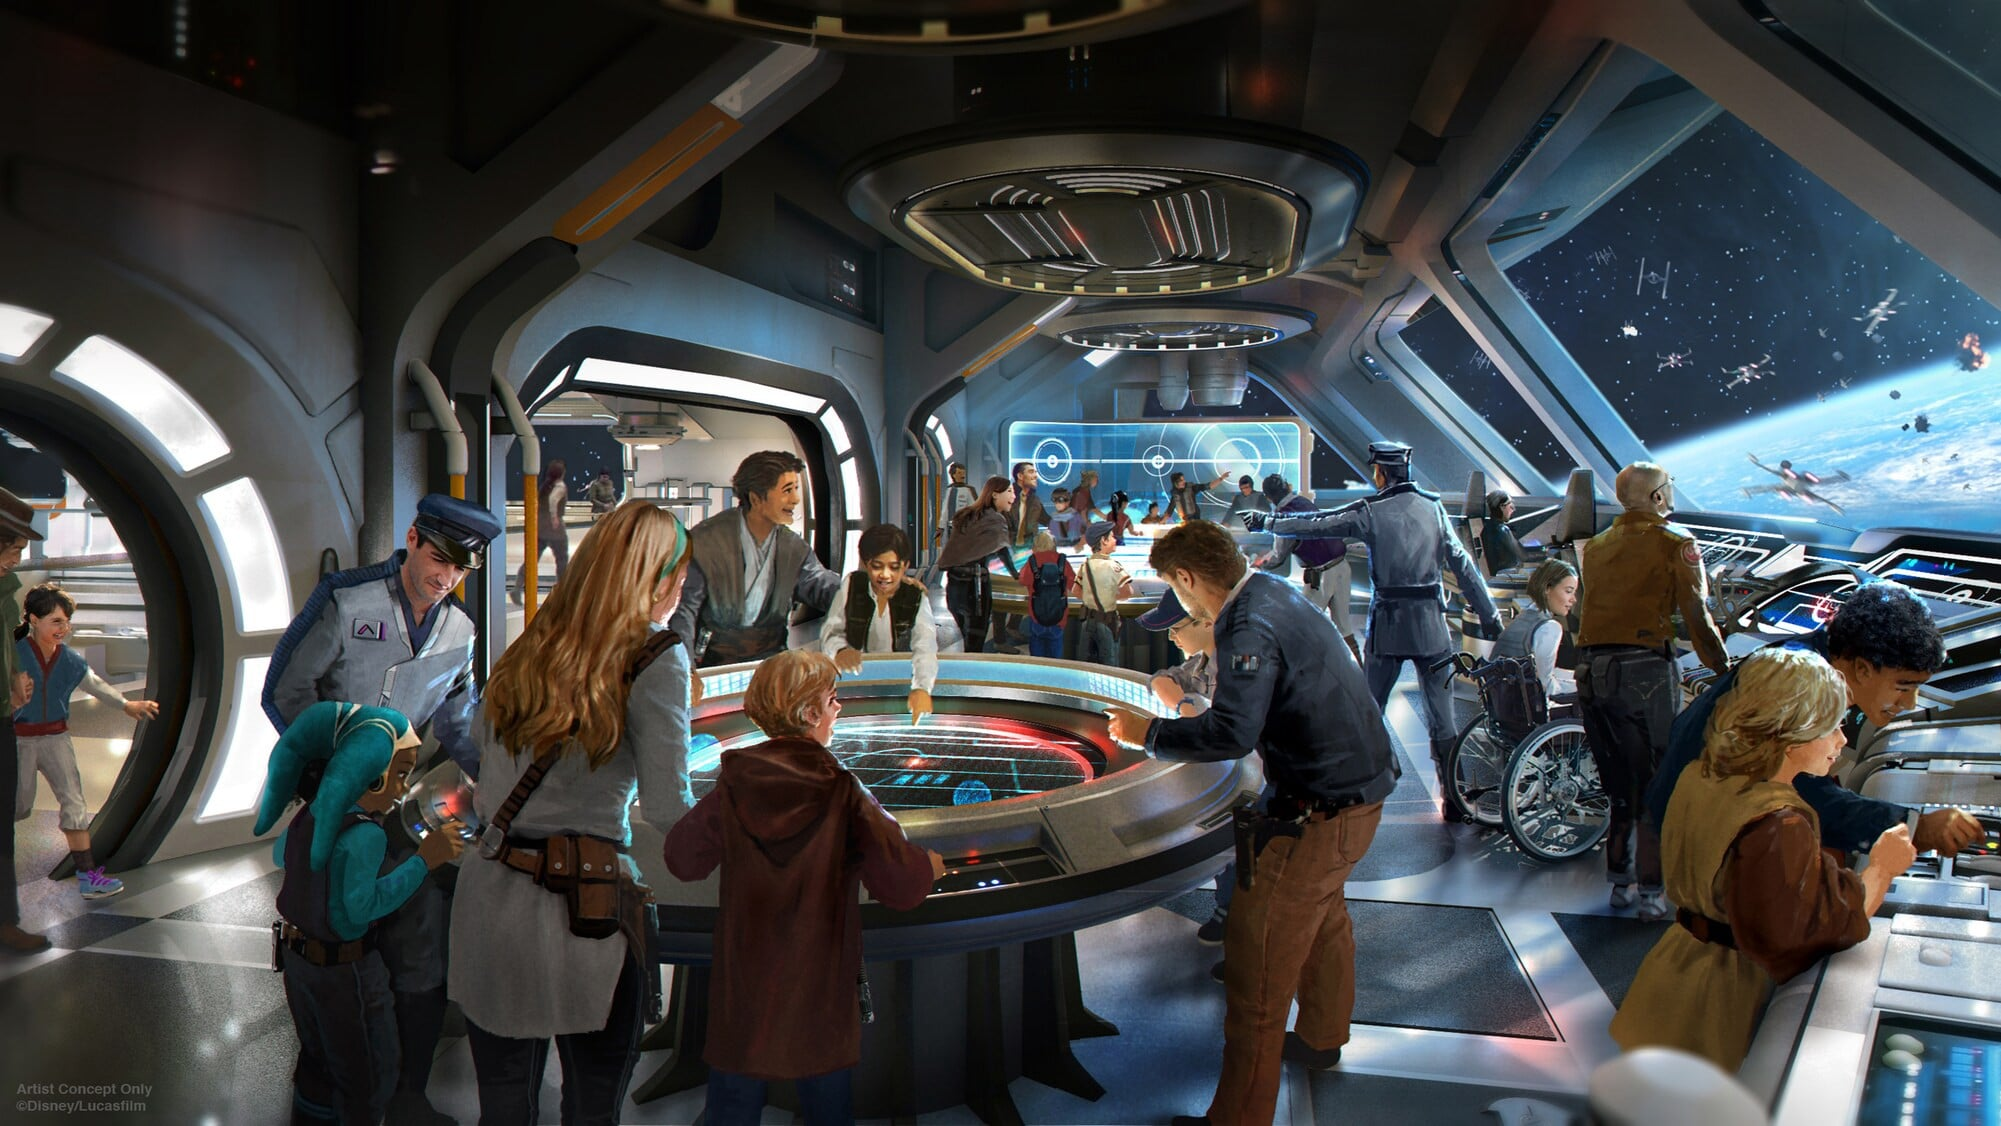 Star Wars: Galactic Starcruiser is opening at Disney World in 2022 17